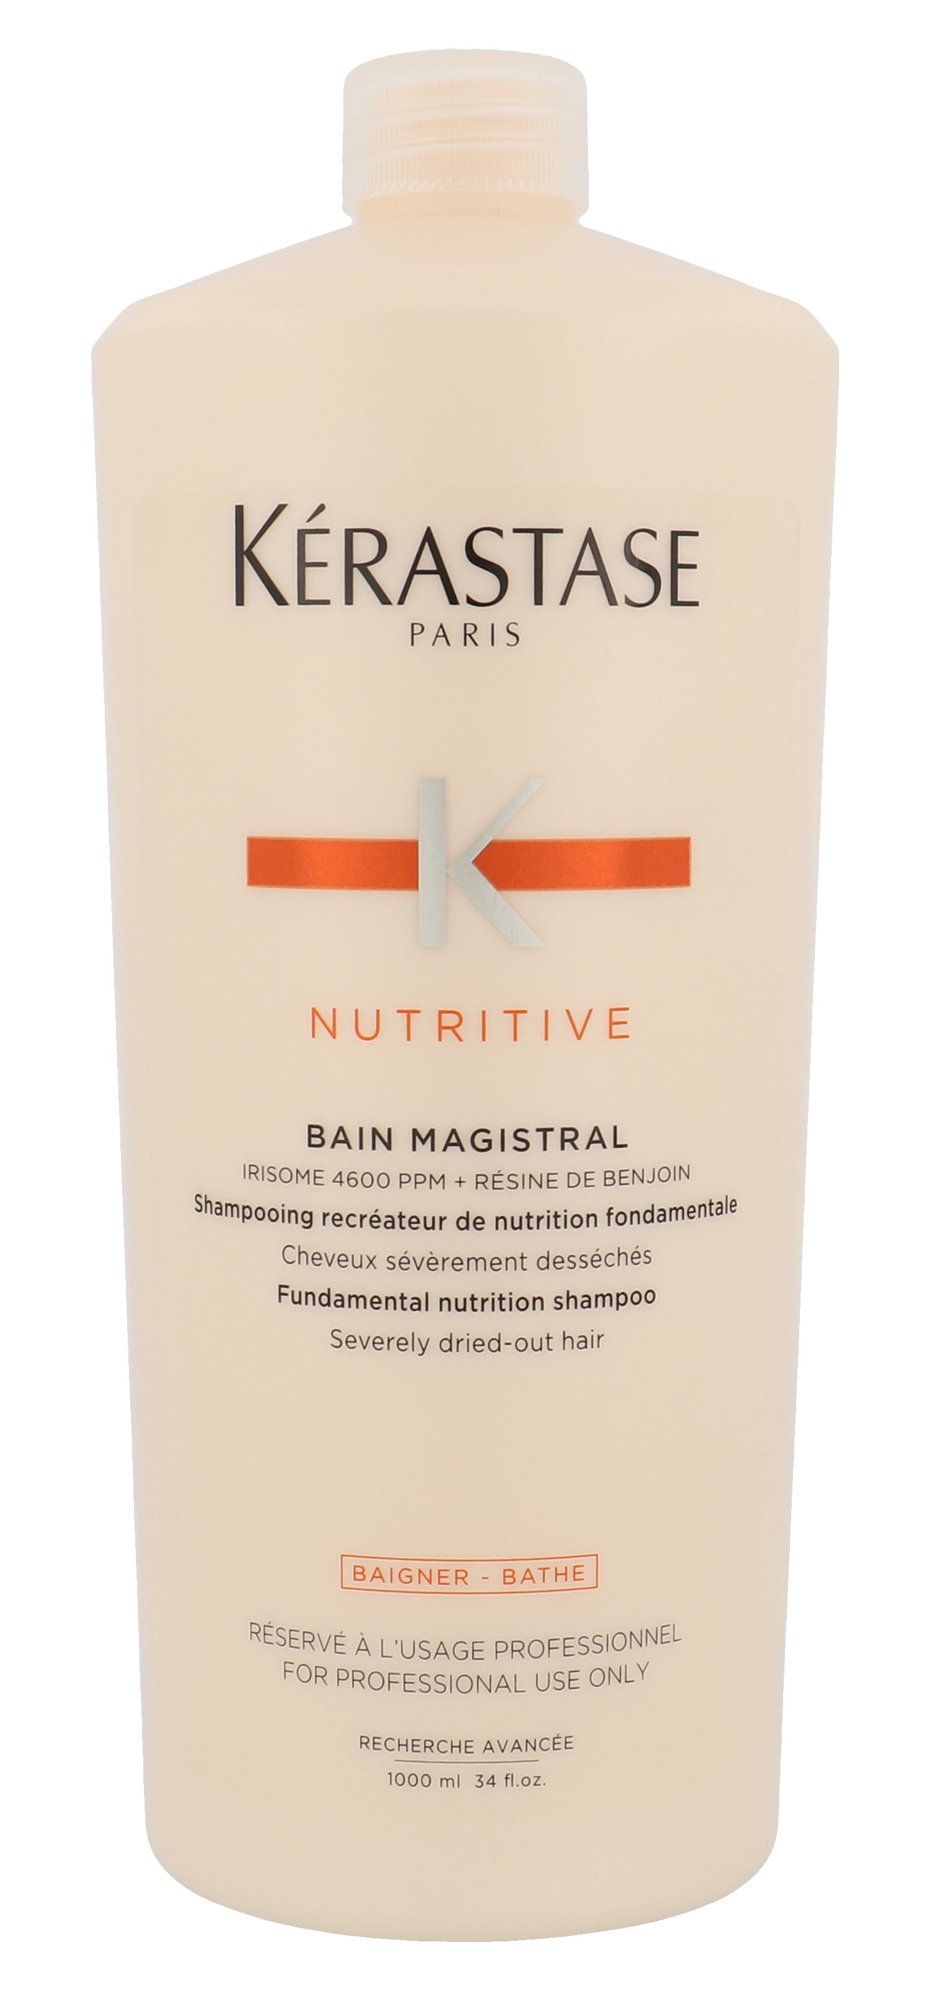 Kérastase Nutritive Cosmetic 1000ml